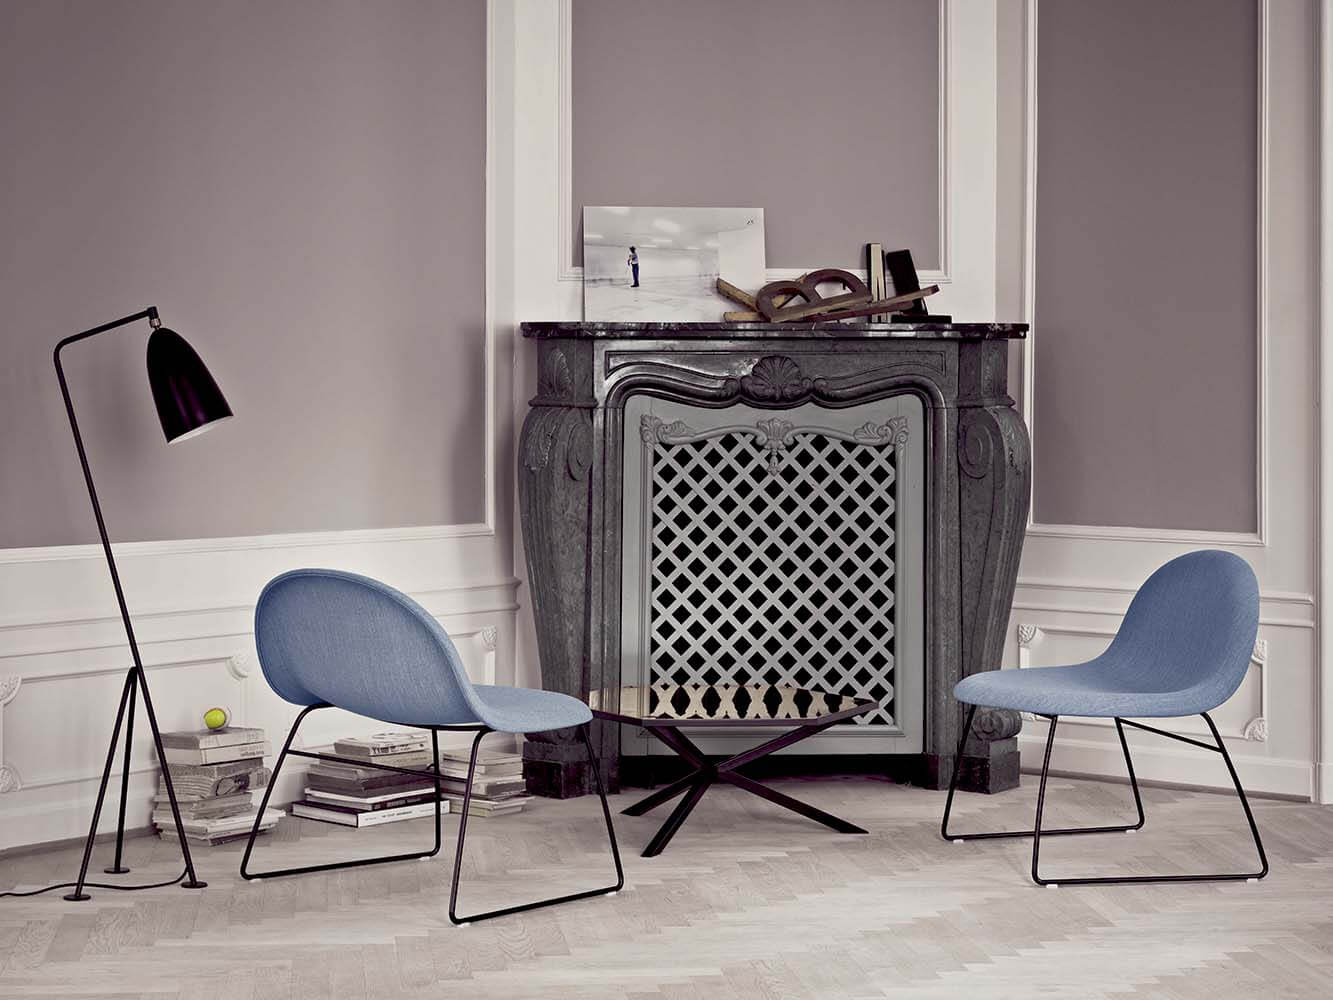 Gubi lounge chairs upholstered with tonus colour 627 grey-blue - sledge base grashoppa floor lamp - jet black